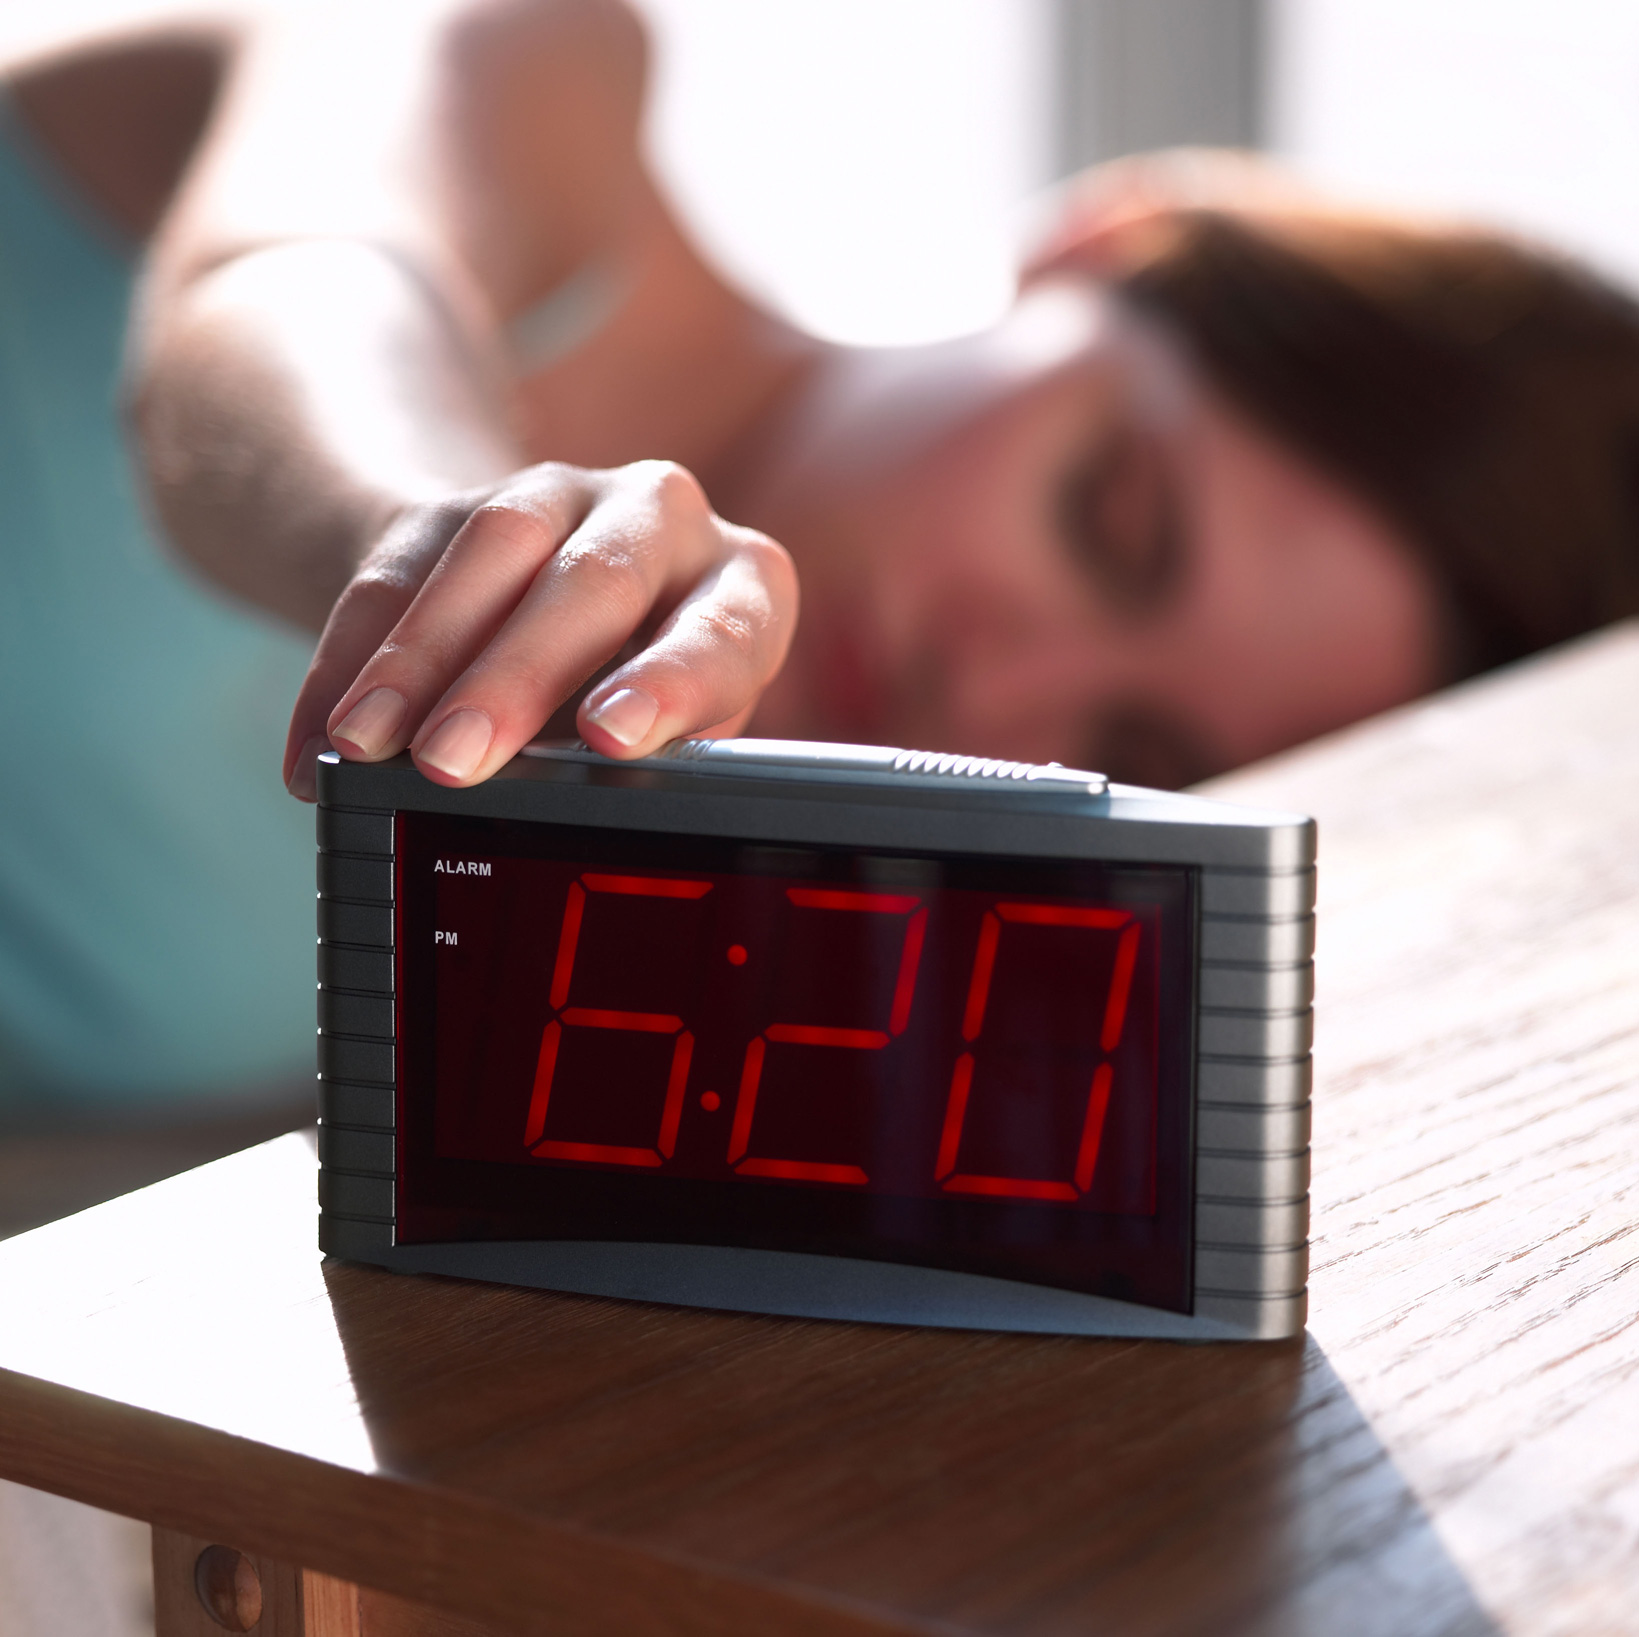 Woman hitting the snooze button on the alarm clock